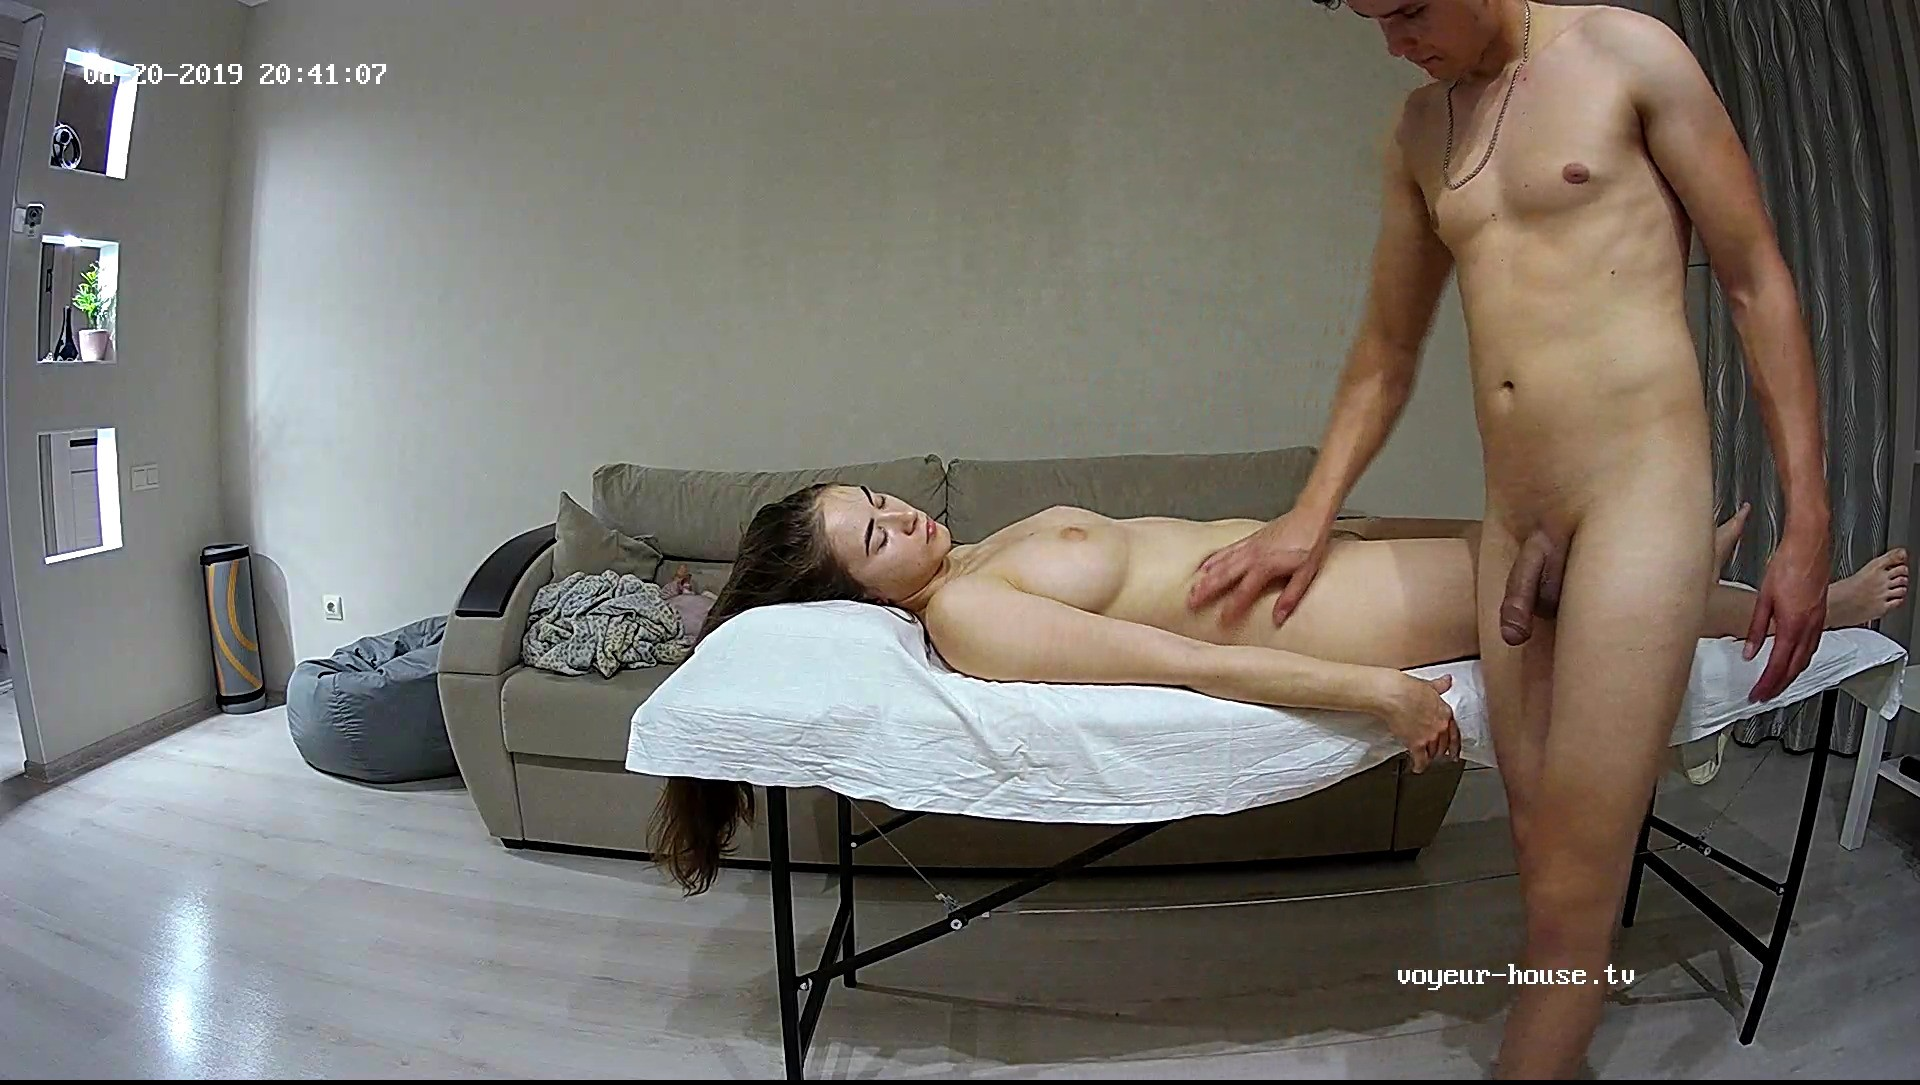 Leonie Massaged By Barney 20 Aug 2019